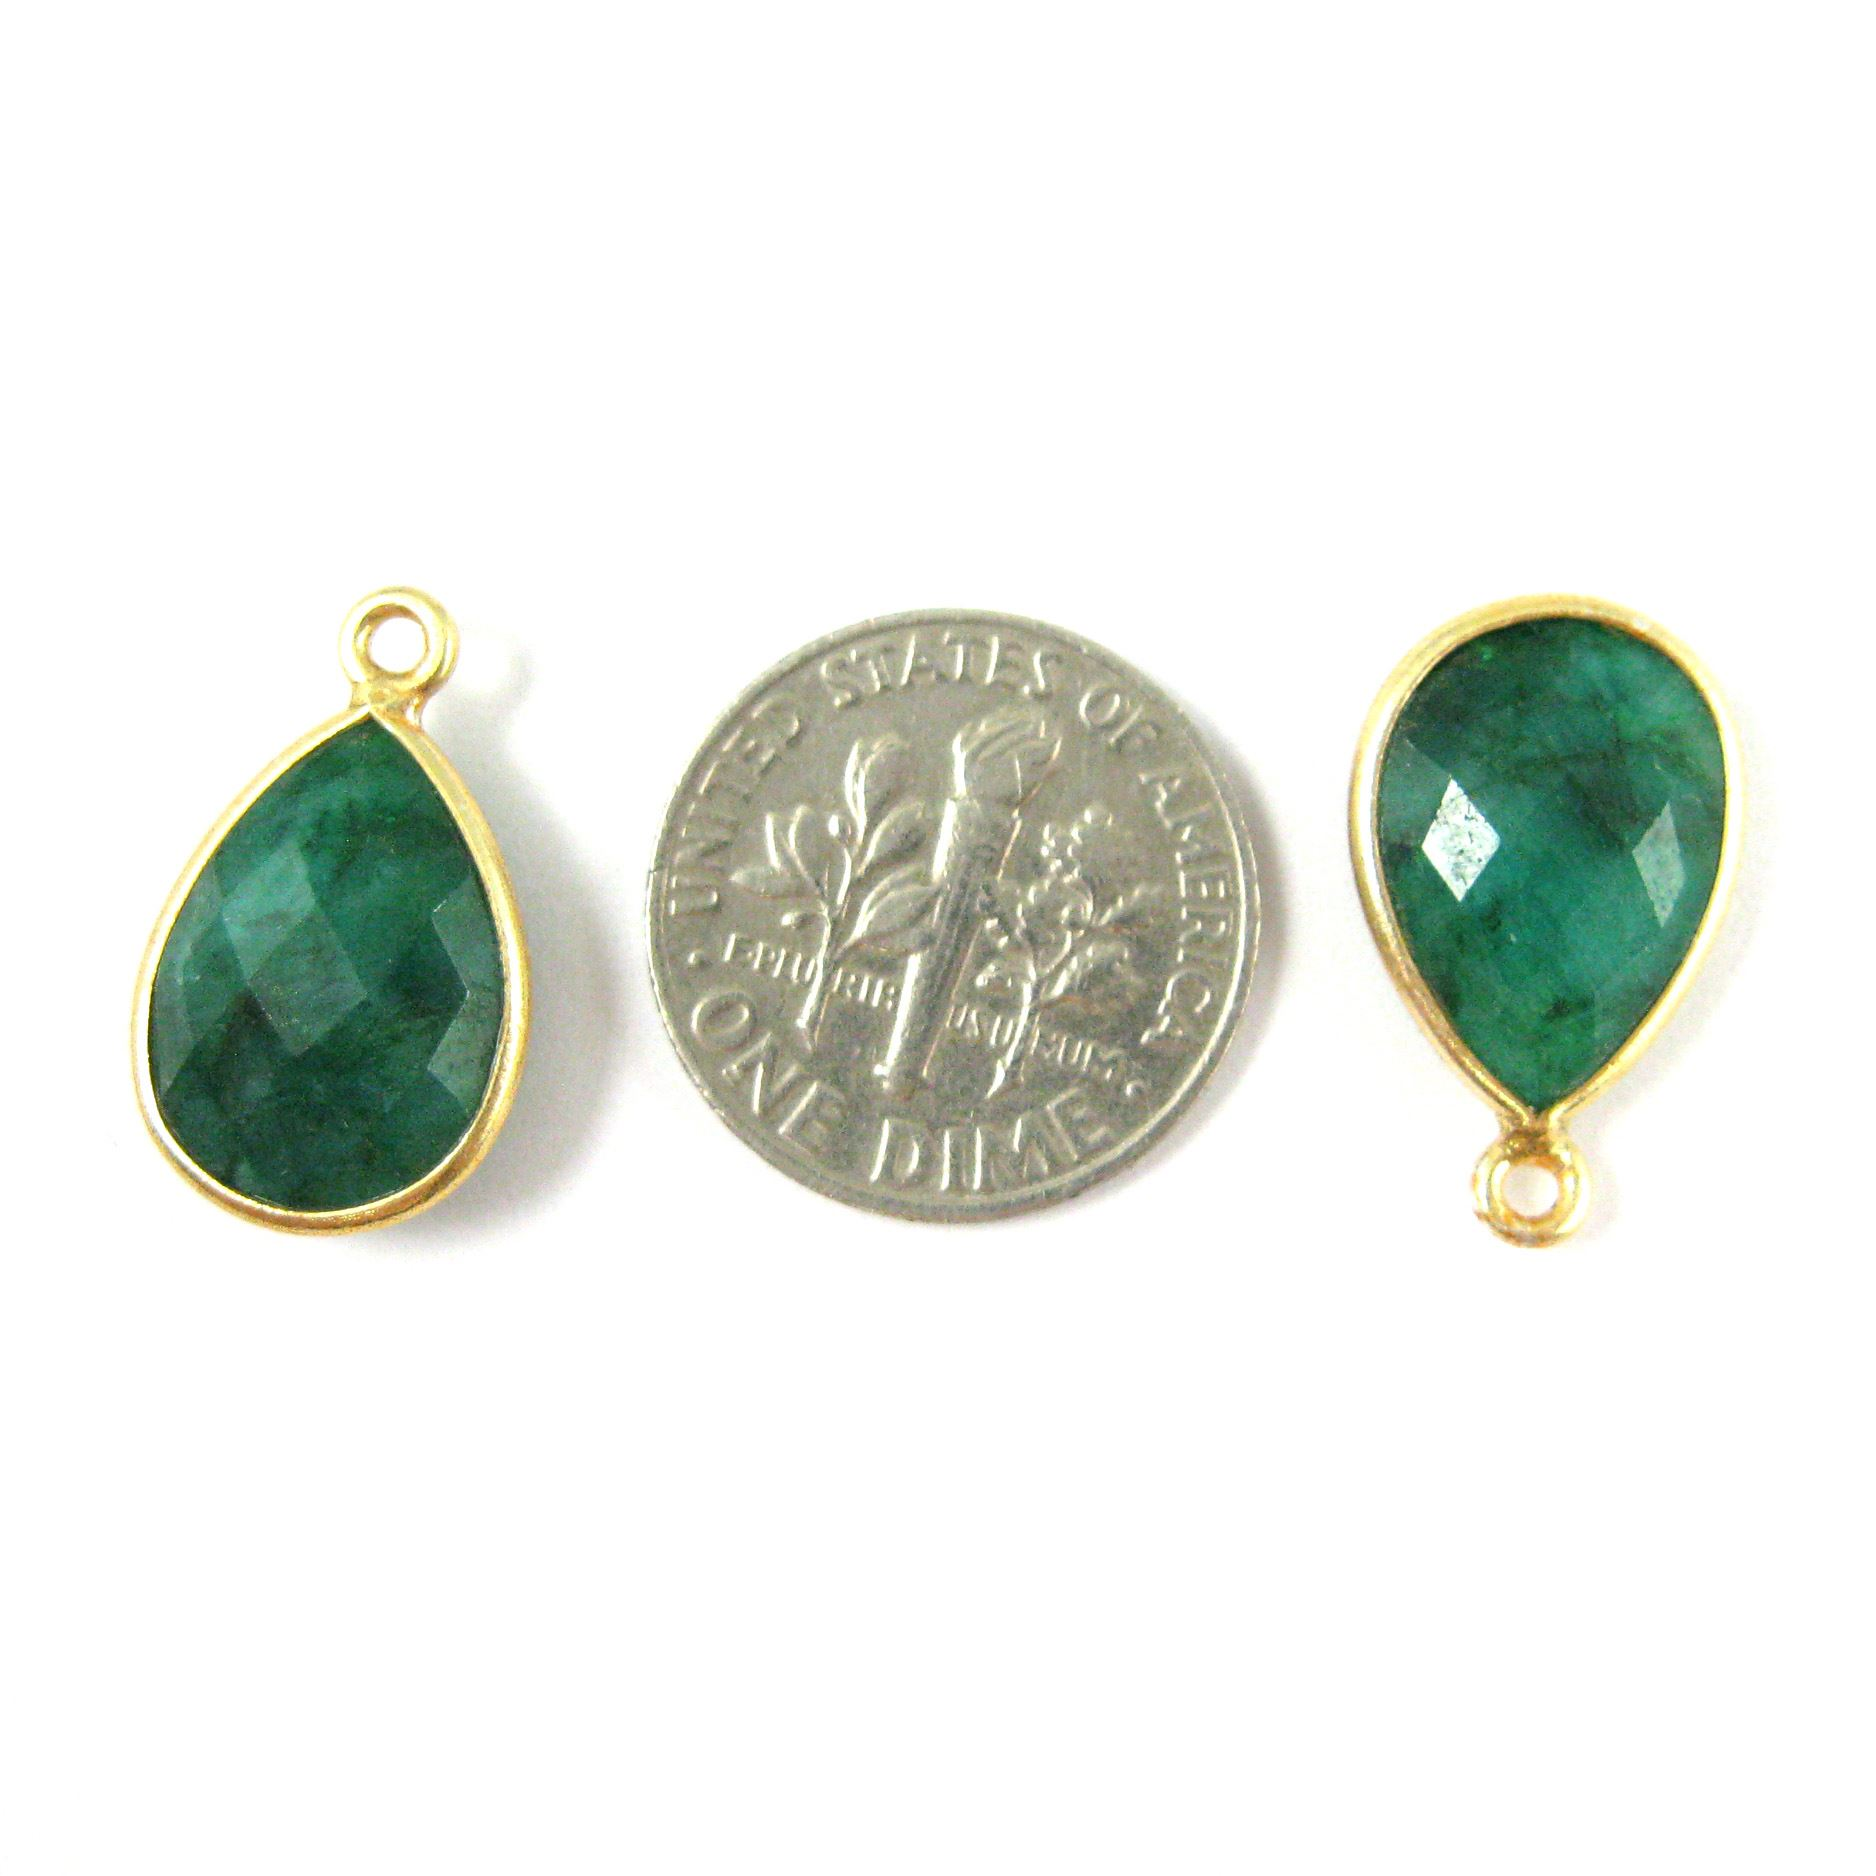 Bezel Gemstone Pendant - 10x14mm Faceted Small Teardop Shape - Dyed Emerald  (Sold per 2 pieces)